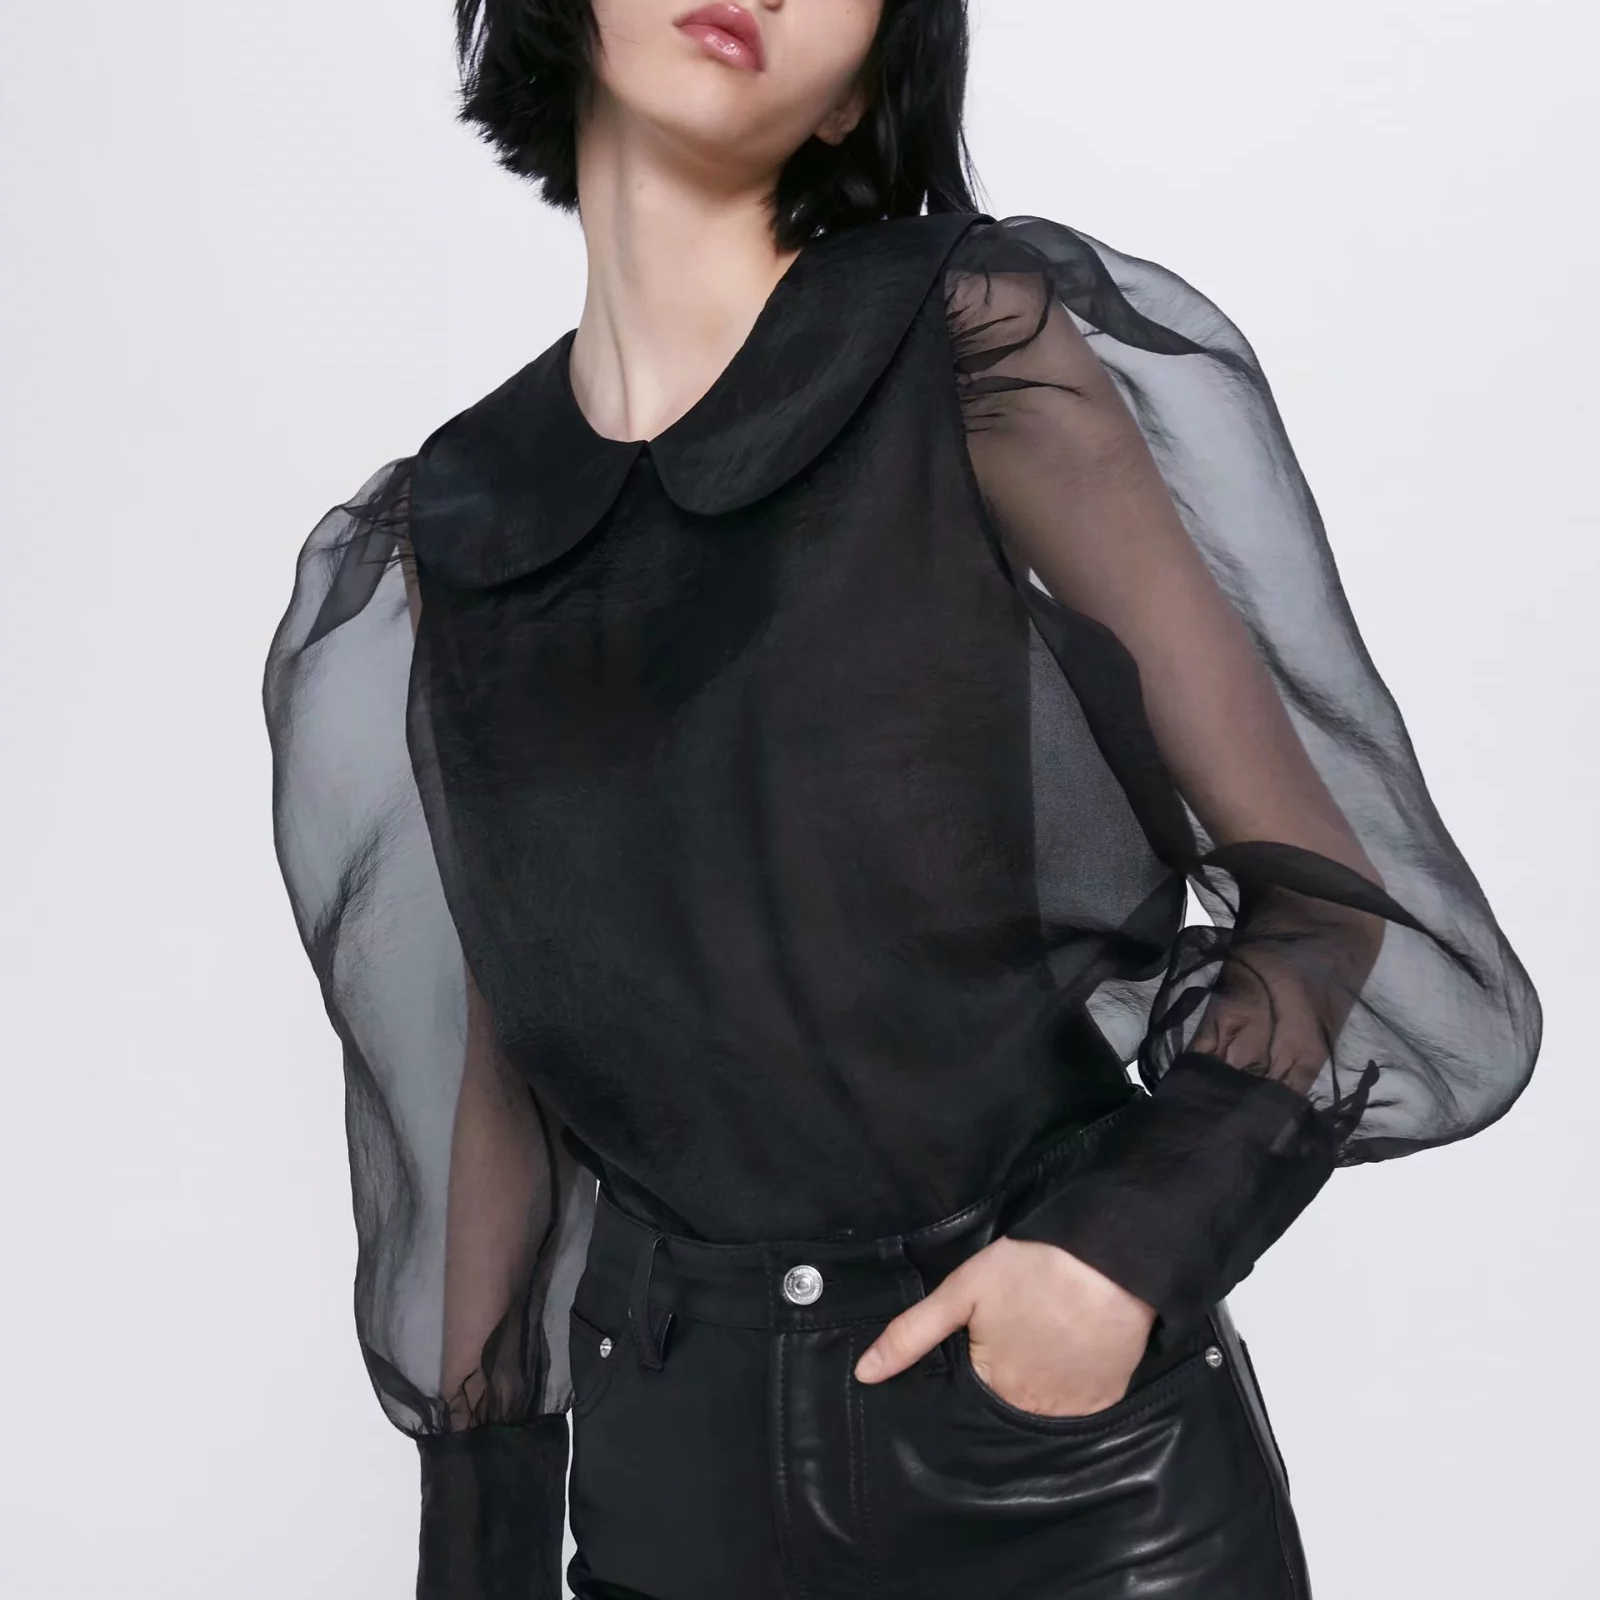 ZA blouse shirt women top black chiffon see-through puff sleeves Casual sexy chic lady blouse female woman clothes